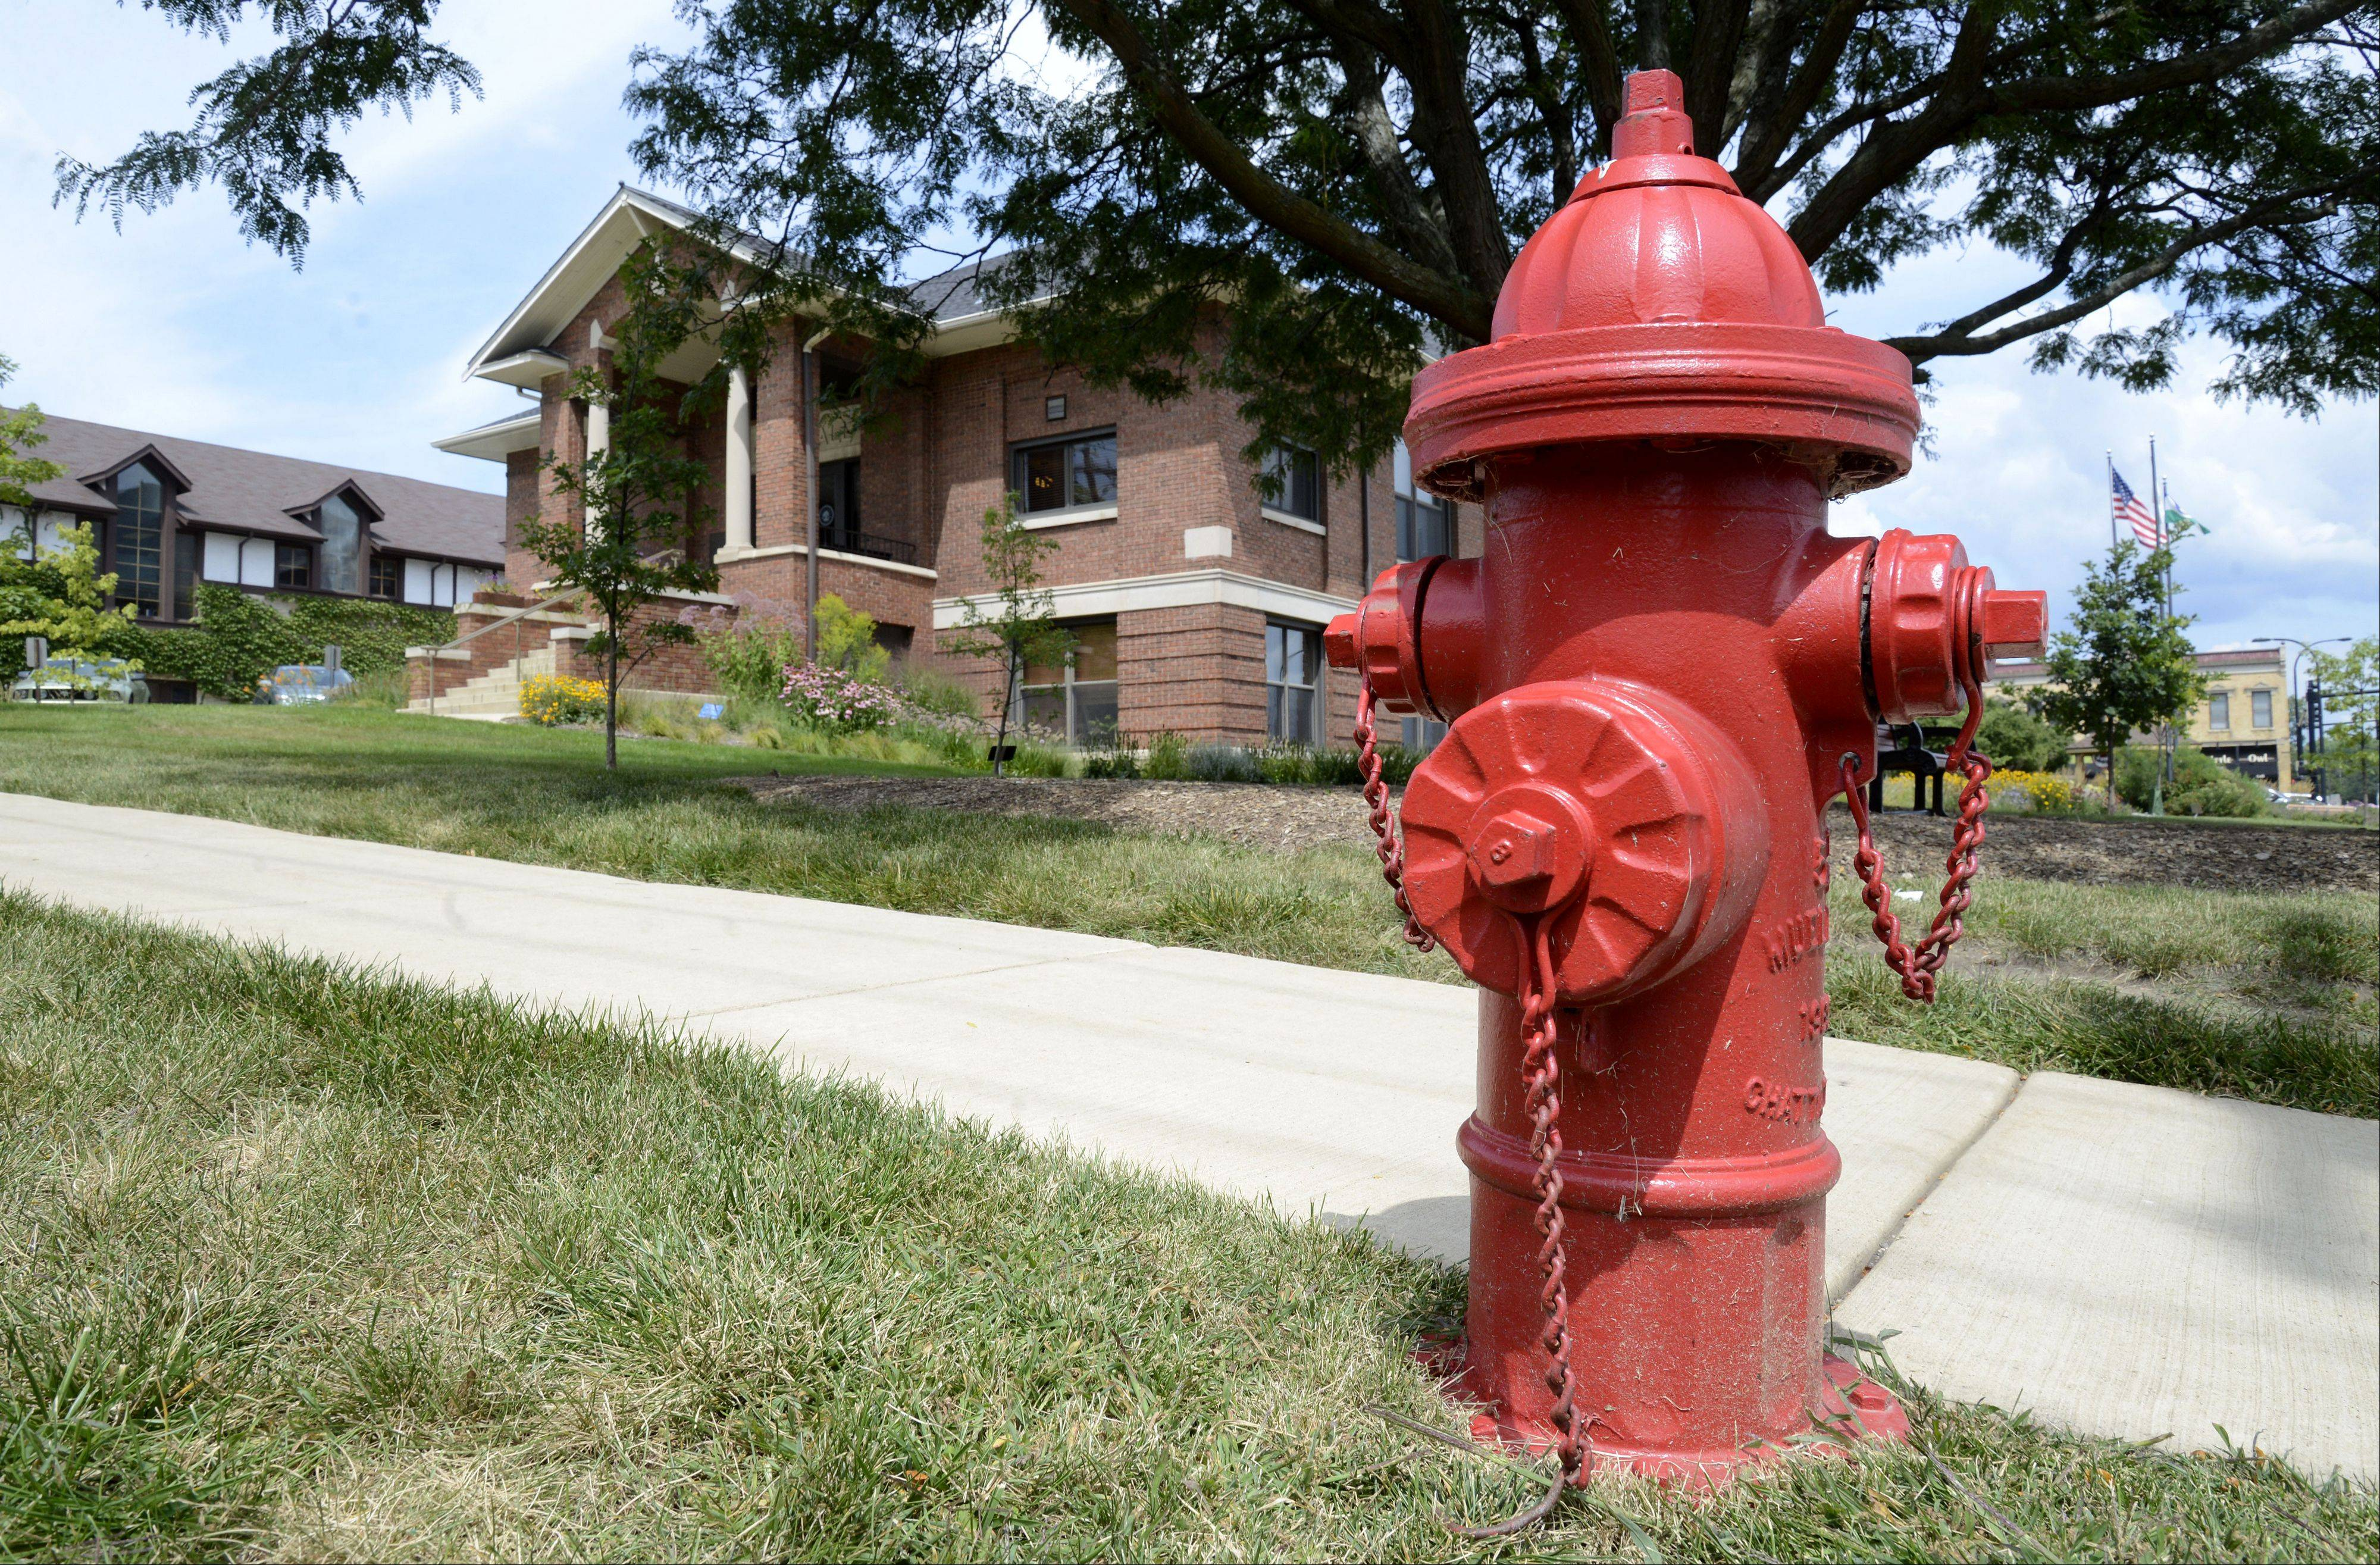 Fire hydrants, like this one in front of Geneva�s City Hall, will be painted in an upcoming contest called �Art on Fire.� The city and the Cultural Arts Commission are looking for artists to �adopt� and creatively paint hydrants throughout the city. The deadline to submit applications is Aug. 30.